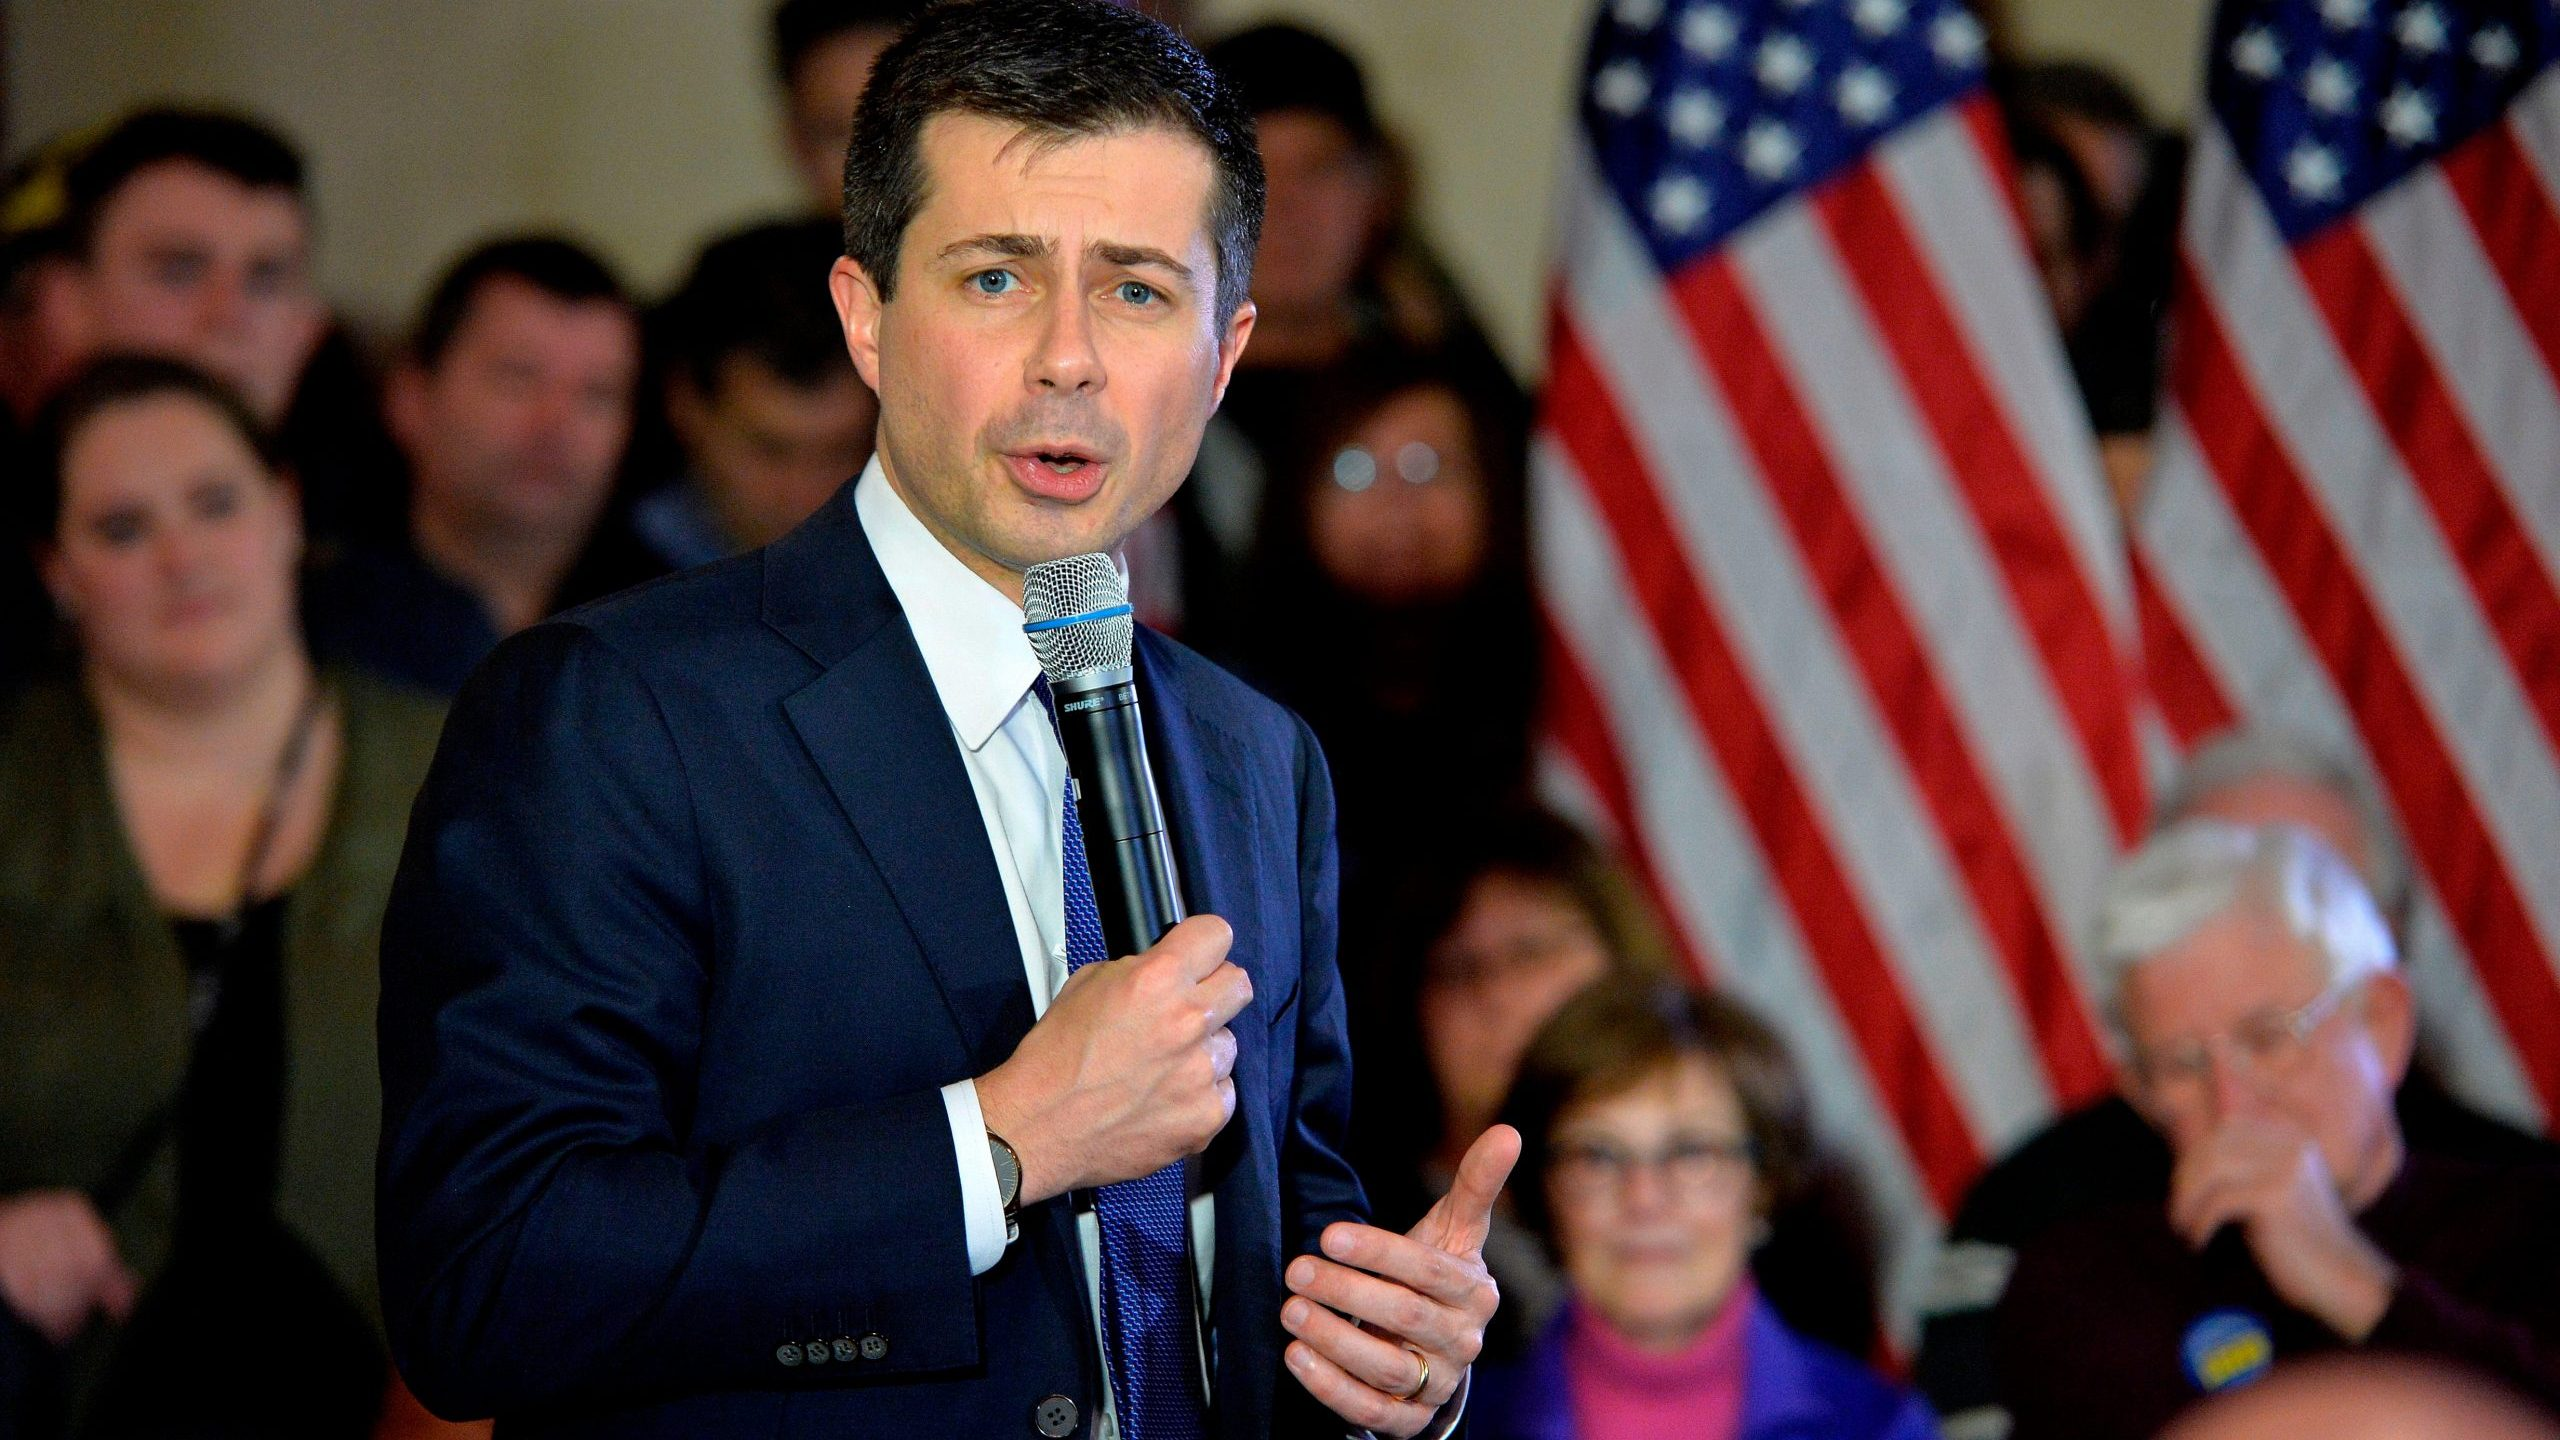 US Presidential Candidate and former South Bend, Indiana mayor Pete Buttigieg speaks to veterans and members of the public at a town hall event at the American Legion Post 98 in Merrimack, New Hampshire on February 6, 2020. (Credit: JOSEPH PREZIOSO/AFP via Getty Images)